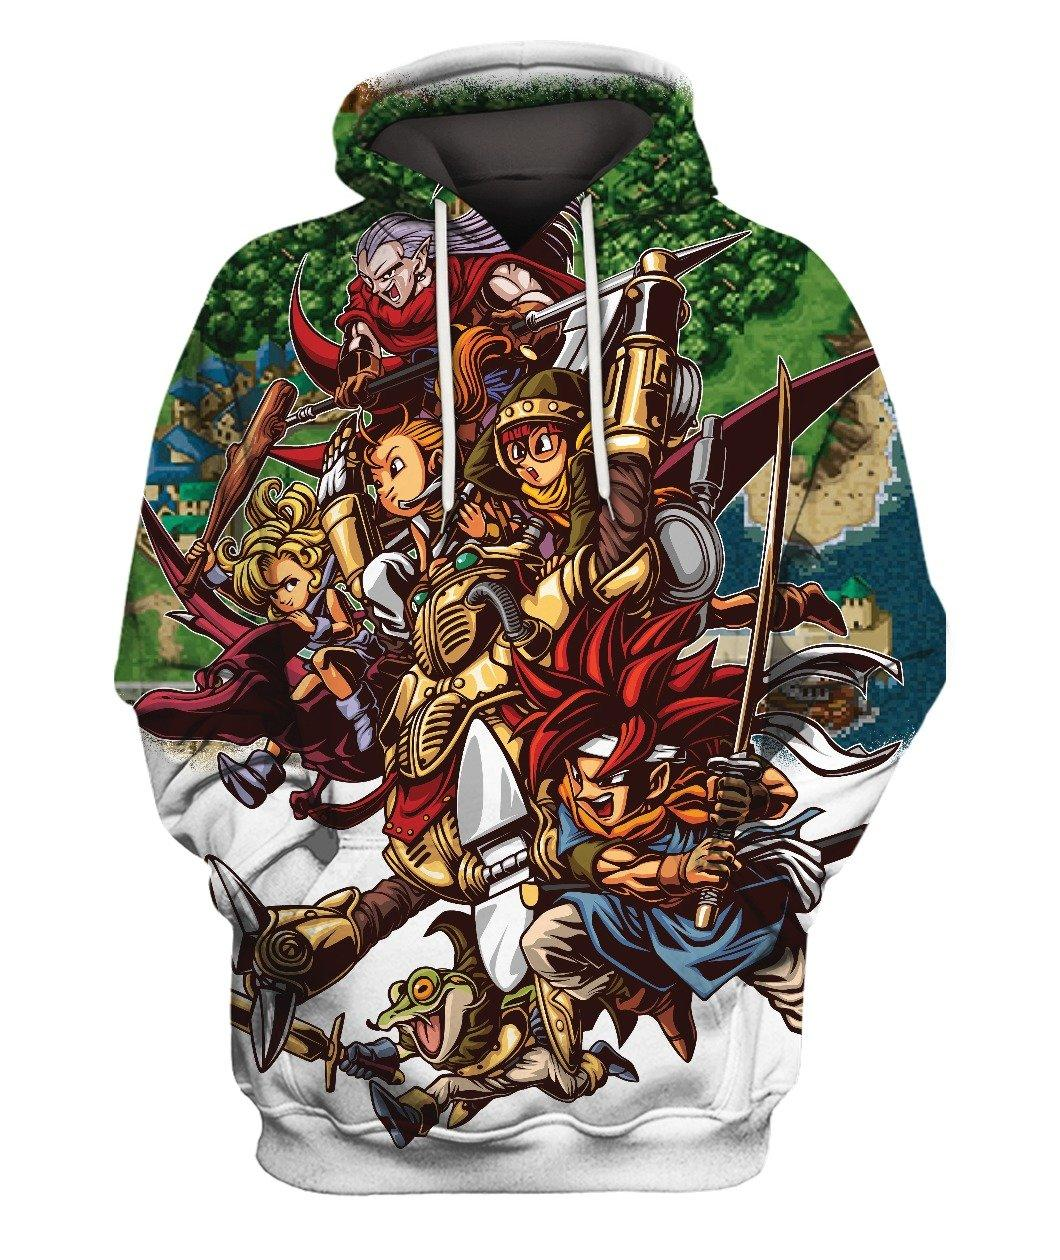 Chrono Trigger Full 3d Hoodie 3d Graphic Printed Tshirt Hoodie Up To 5xl